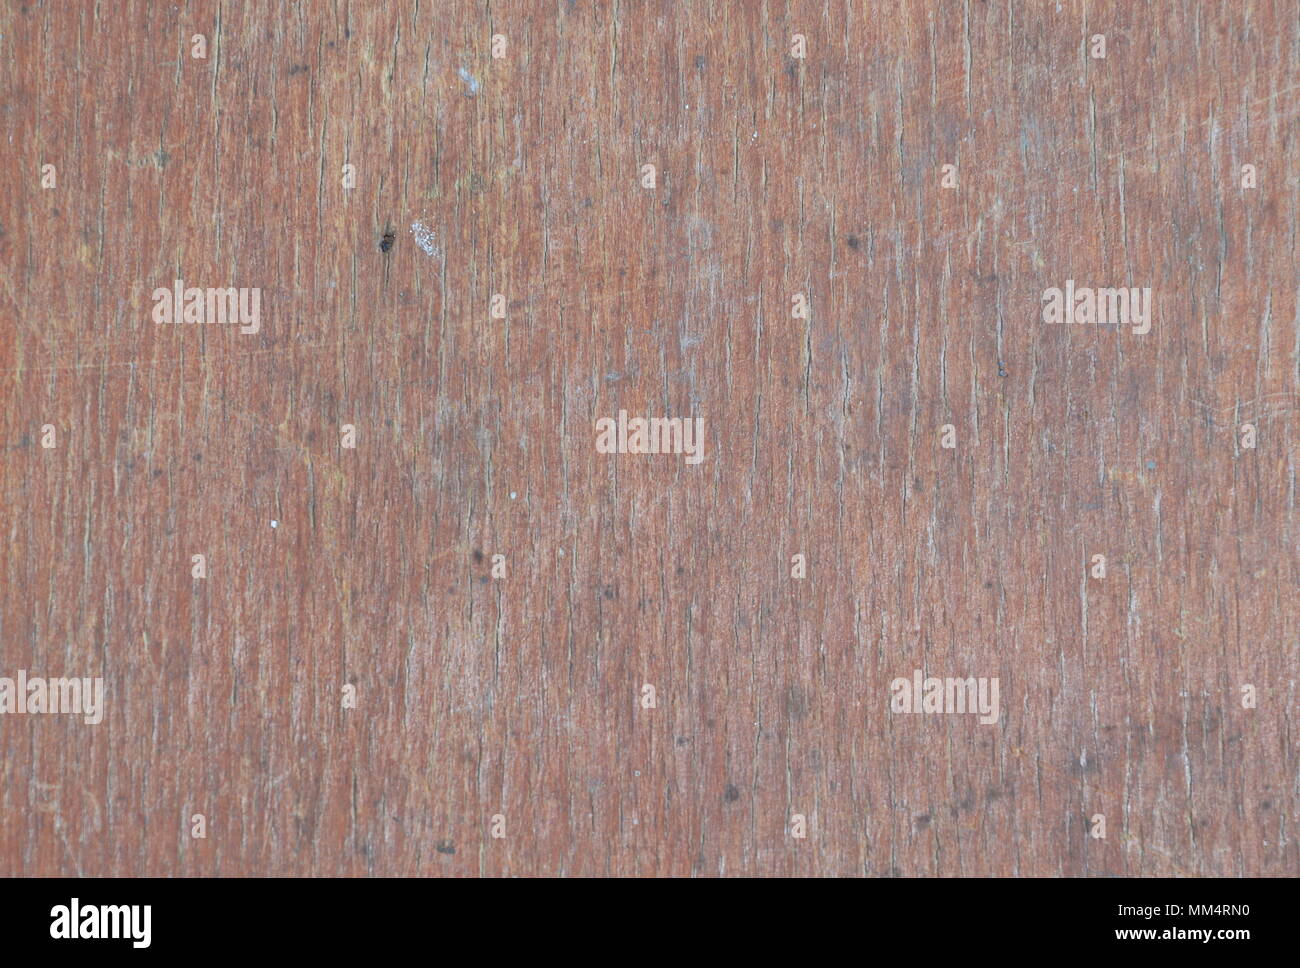 wooden table texture and background - Stock Image